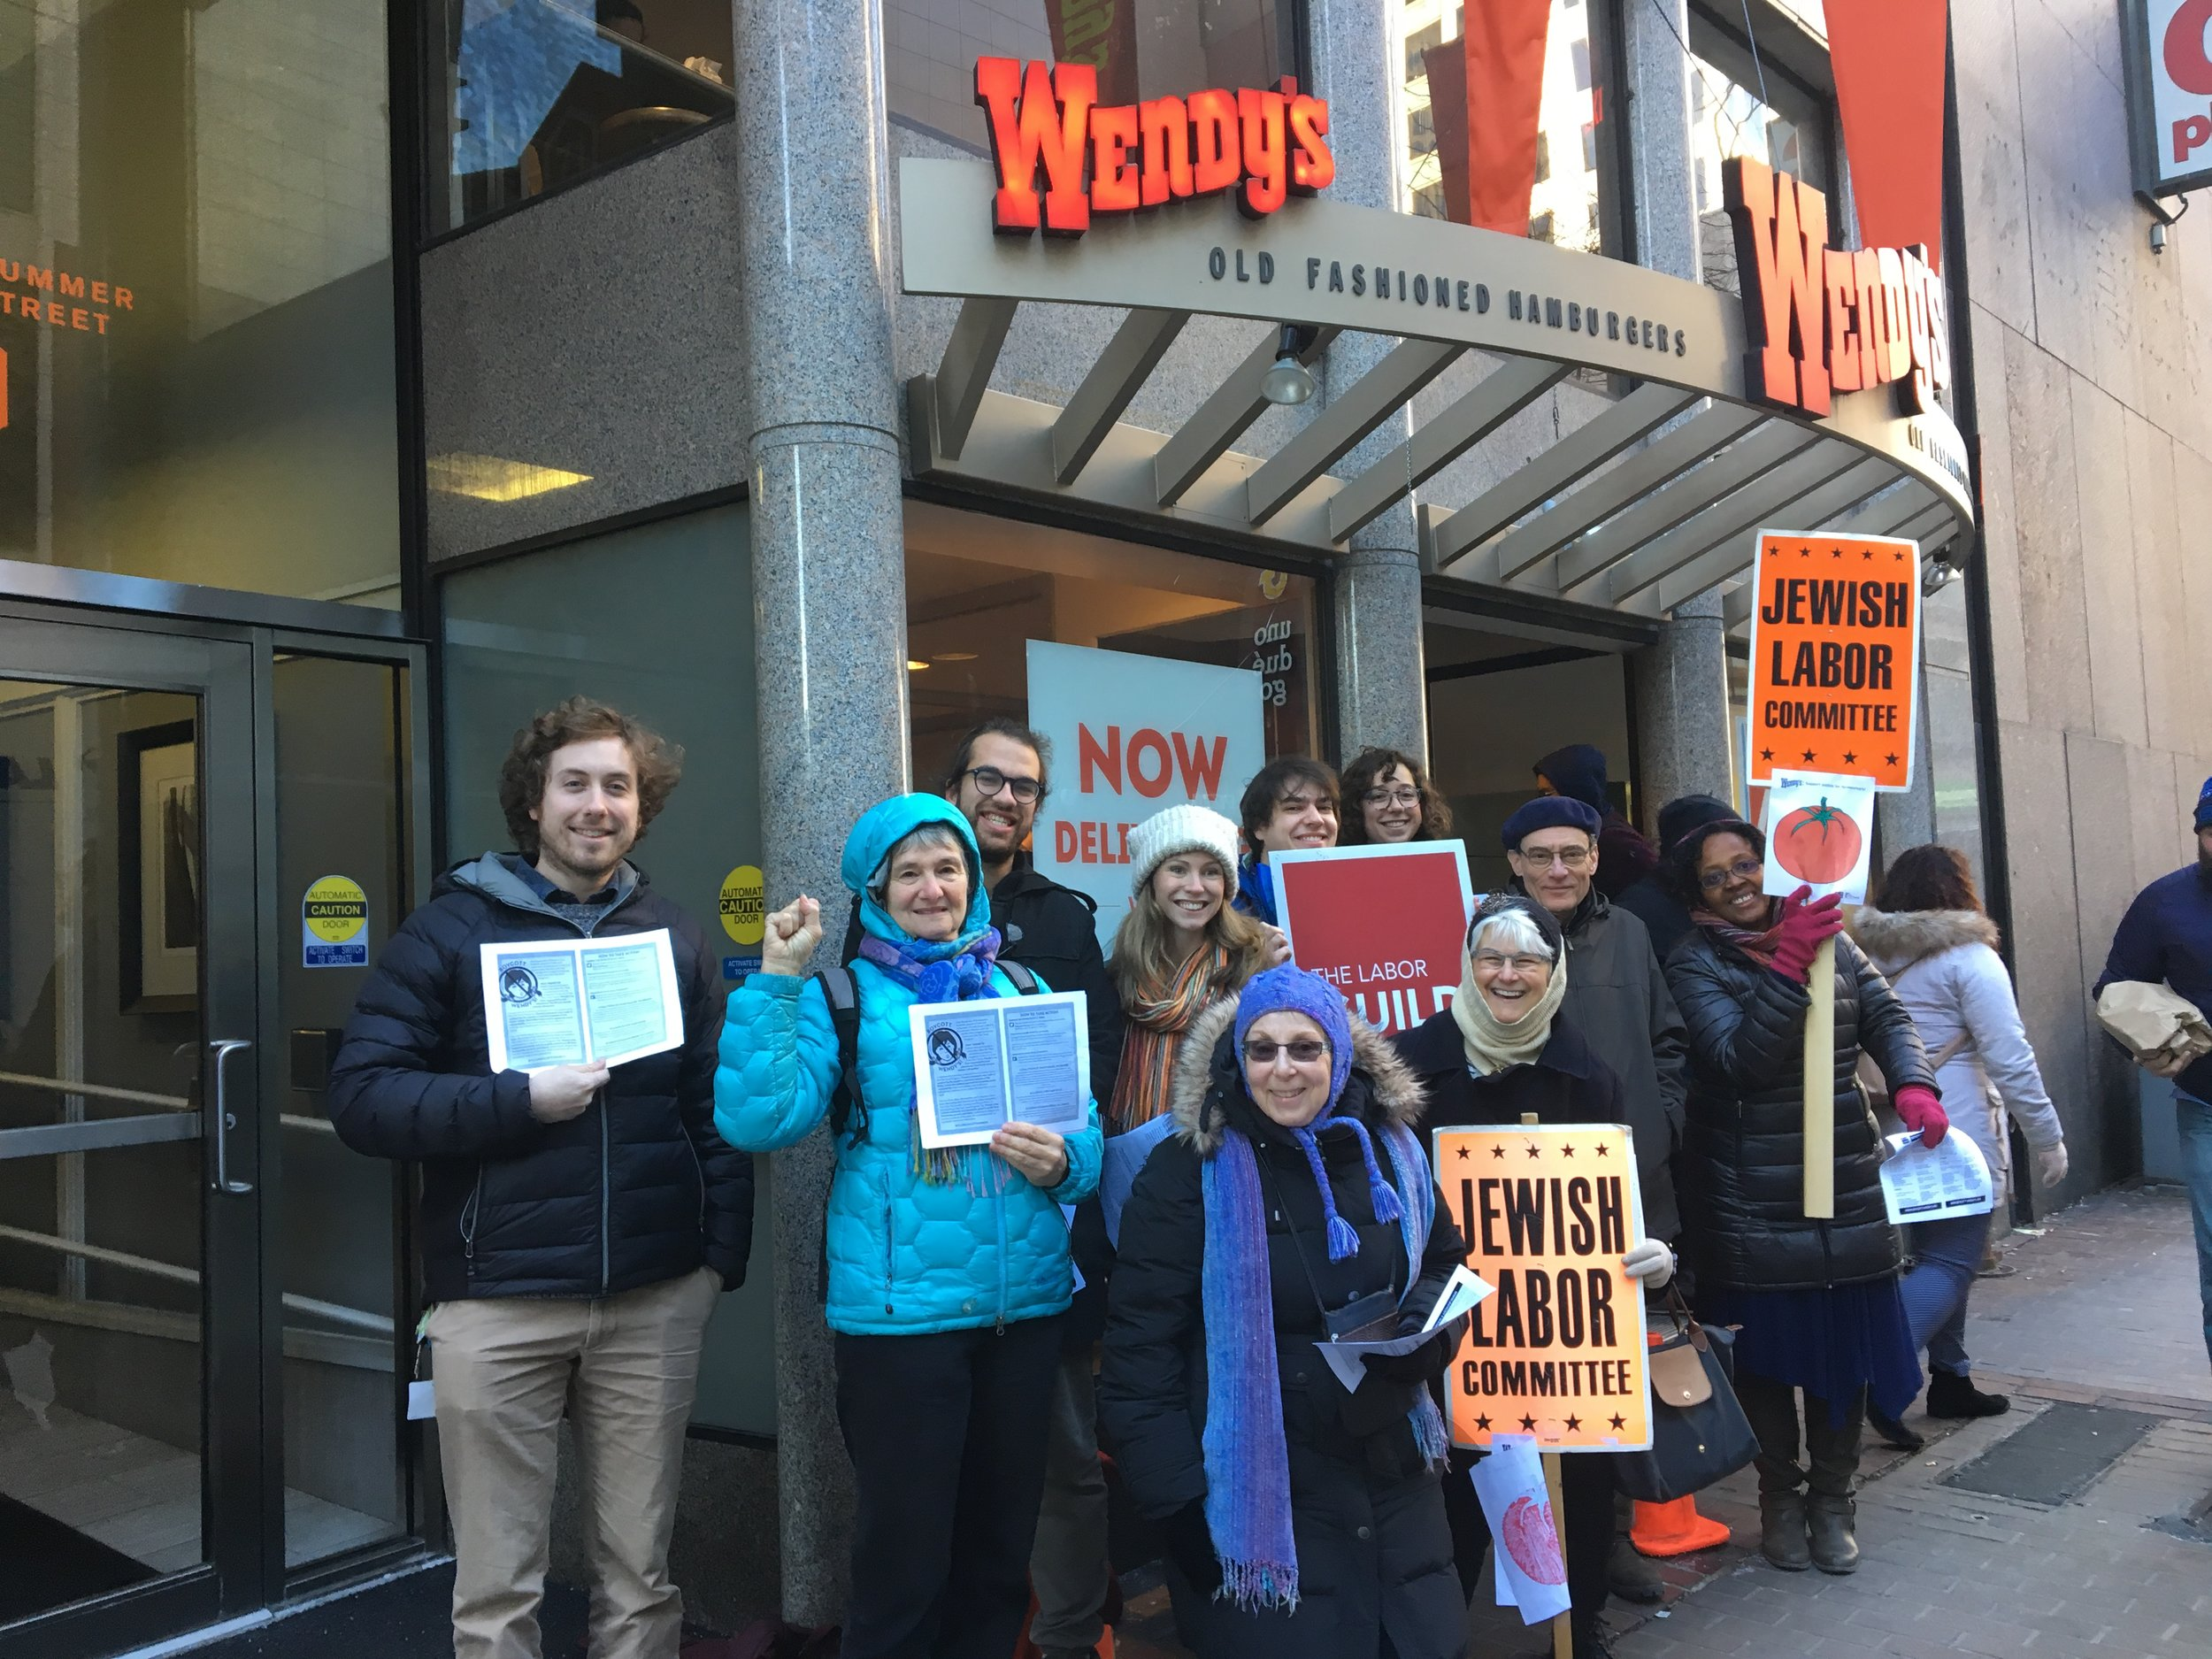 Wendy's protest 1-18-18 group photo.JPG